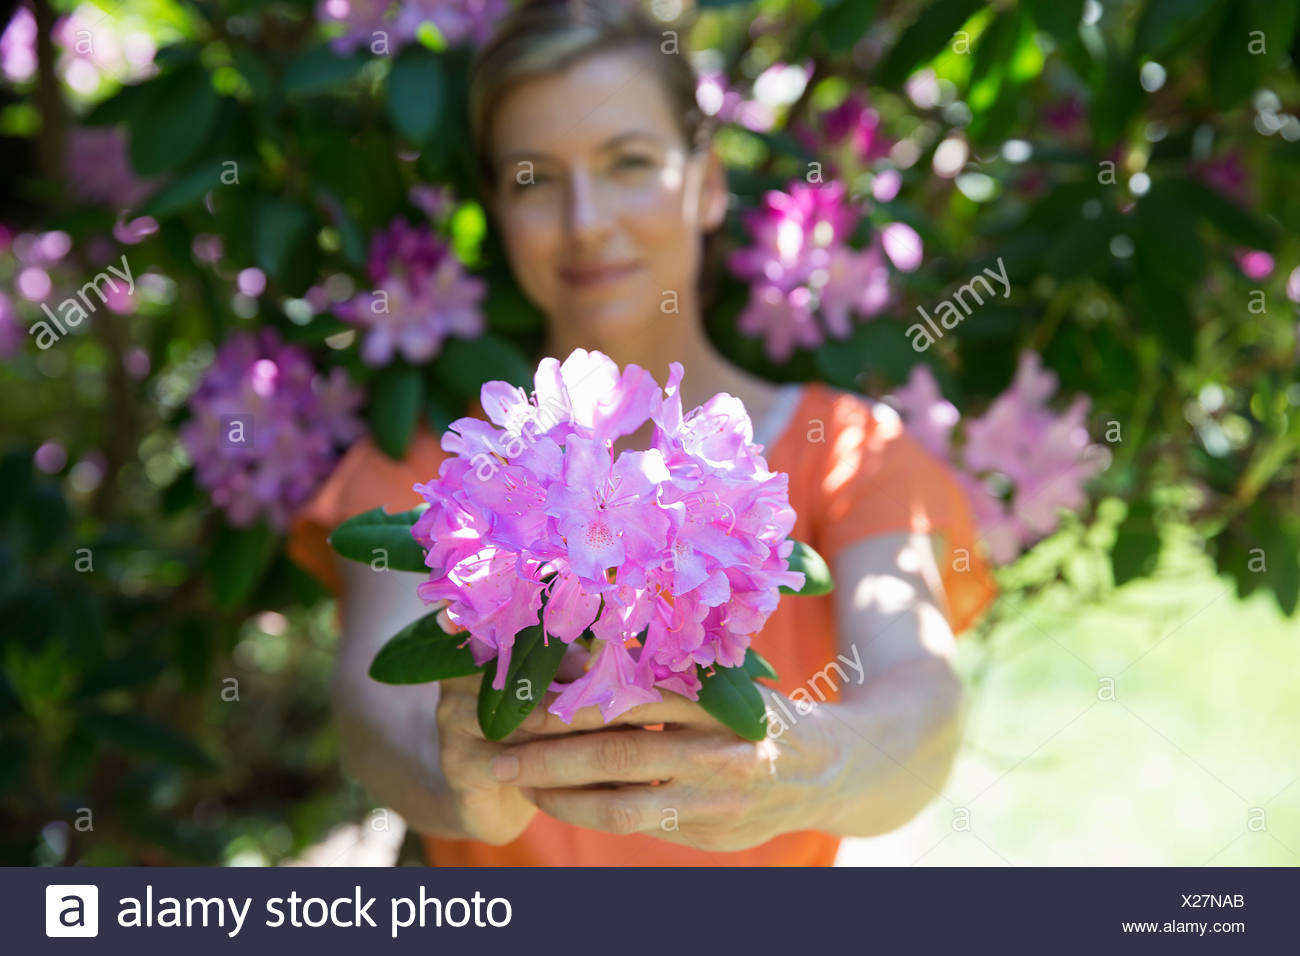 A woman standing in front of a flowering shrub, holding out a large purple hydrangea bloom. - Stock Image